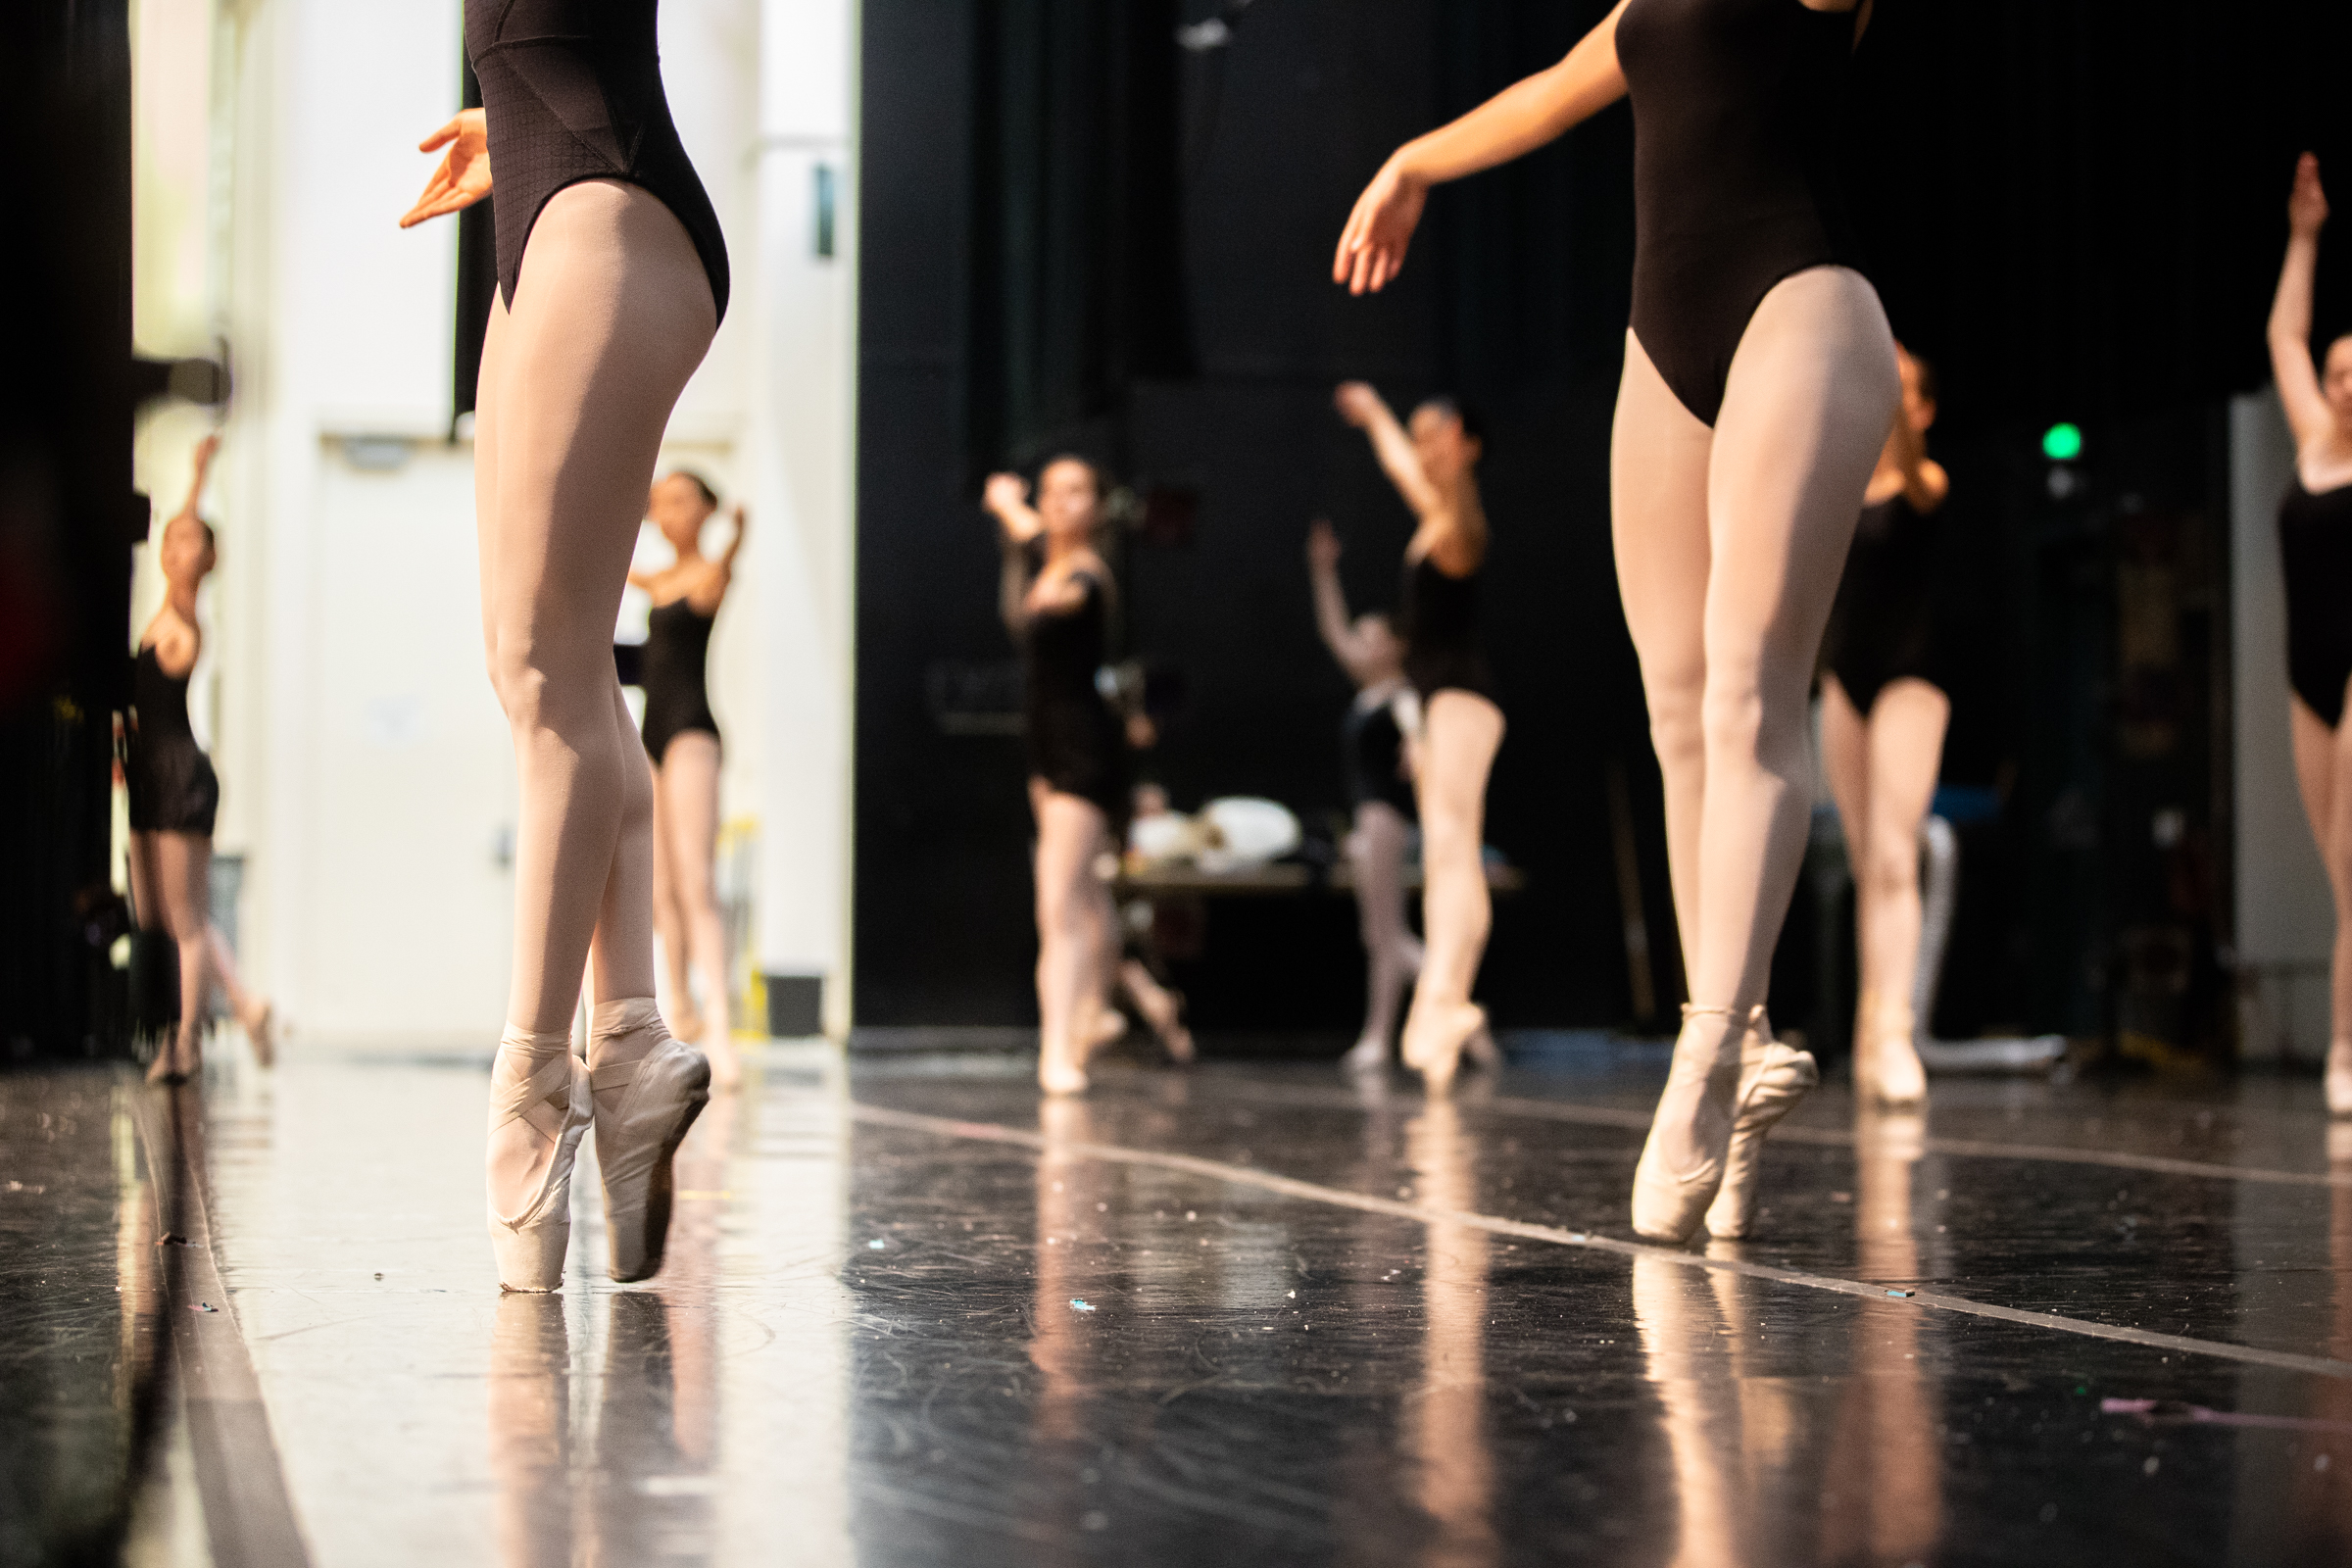 """Dancers rehearse the Waltz of the Snowflakes before Western Ballet's production of """"The Nutcracker"""" at the Mountain View Center for the Performing Arts on Dec. 2, 2018."""